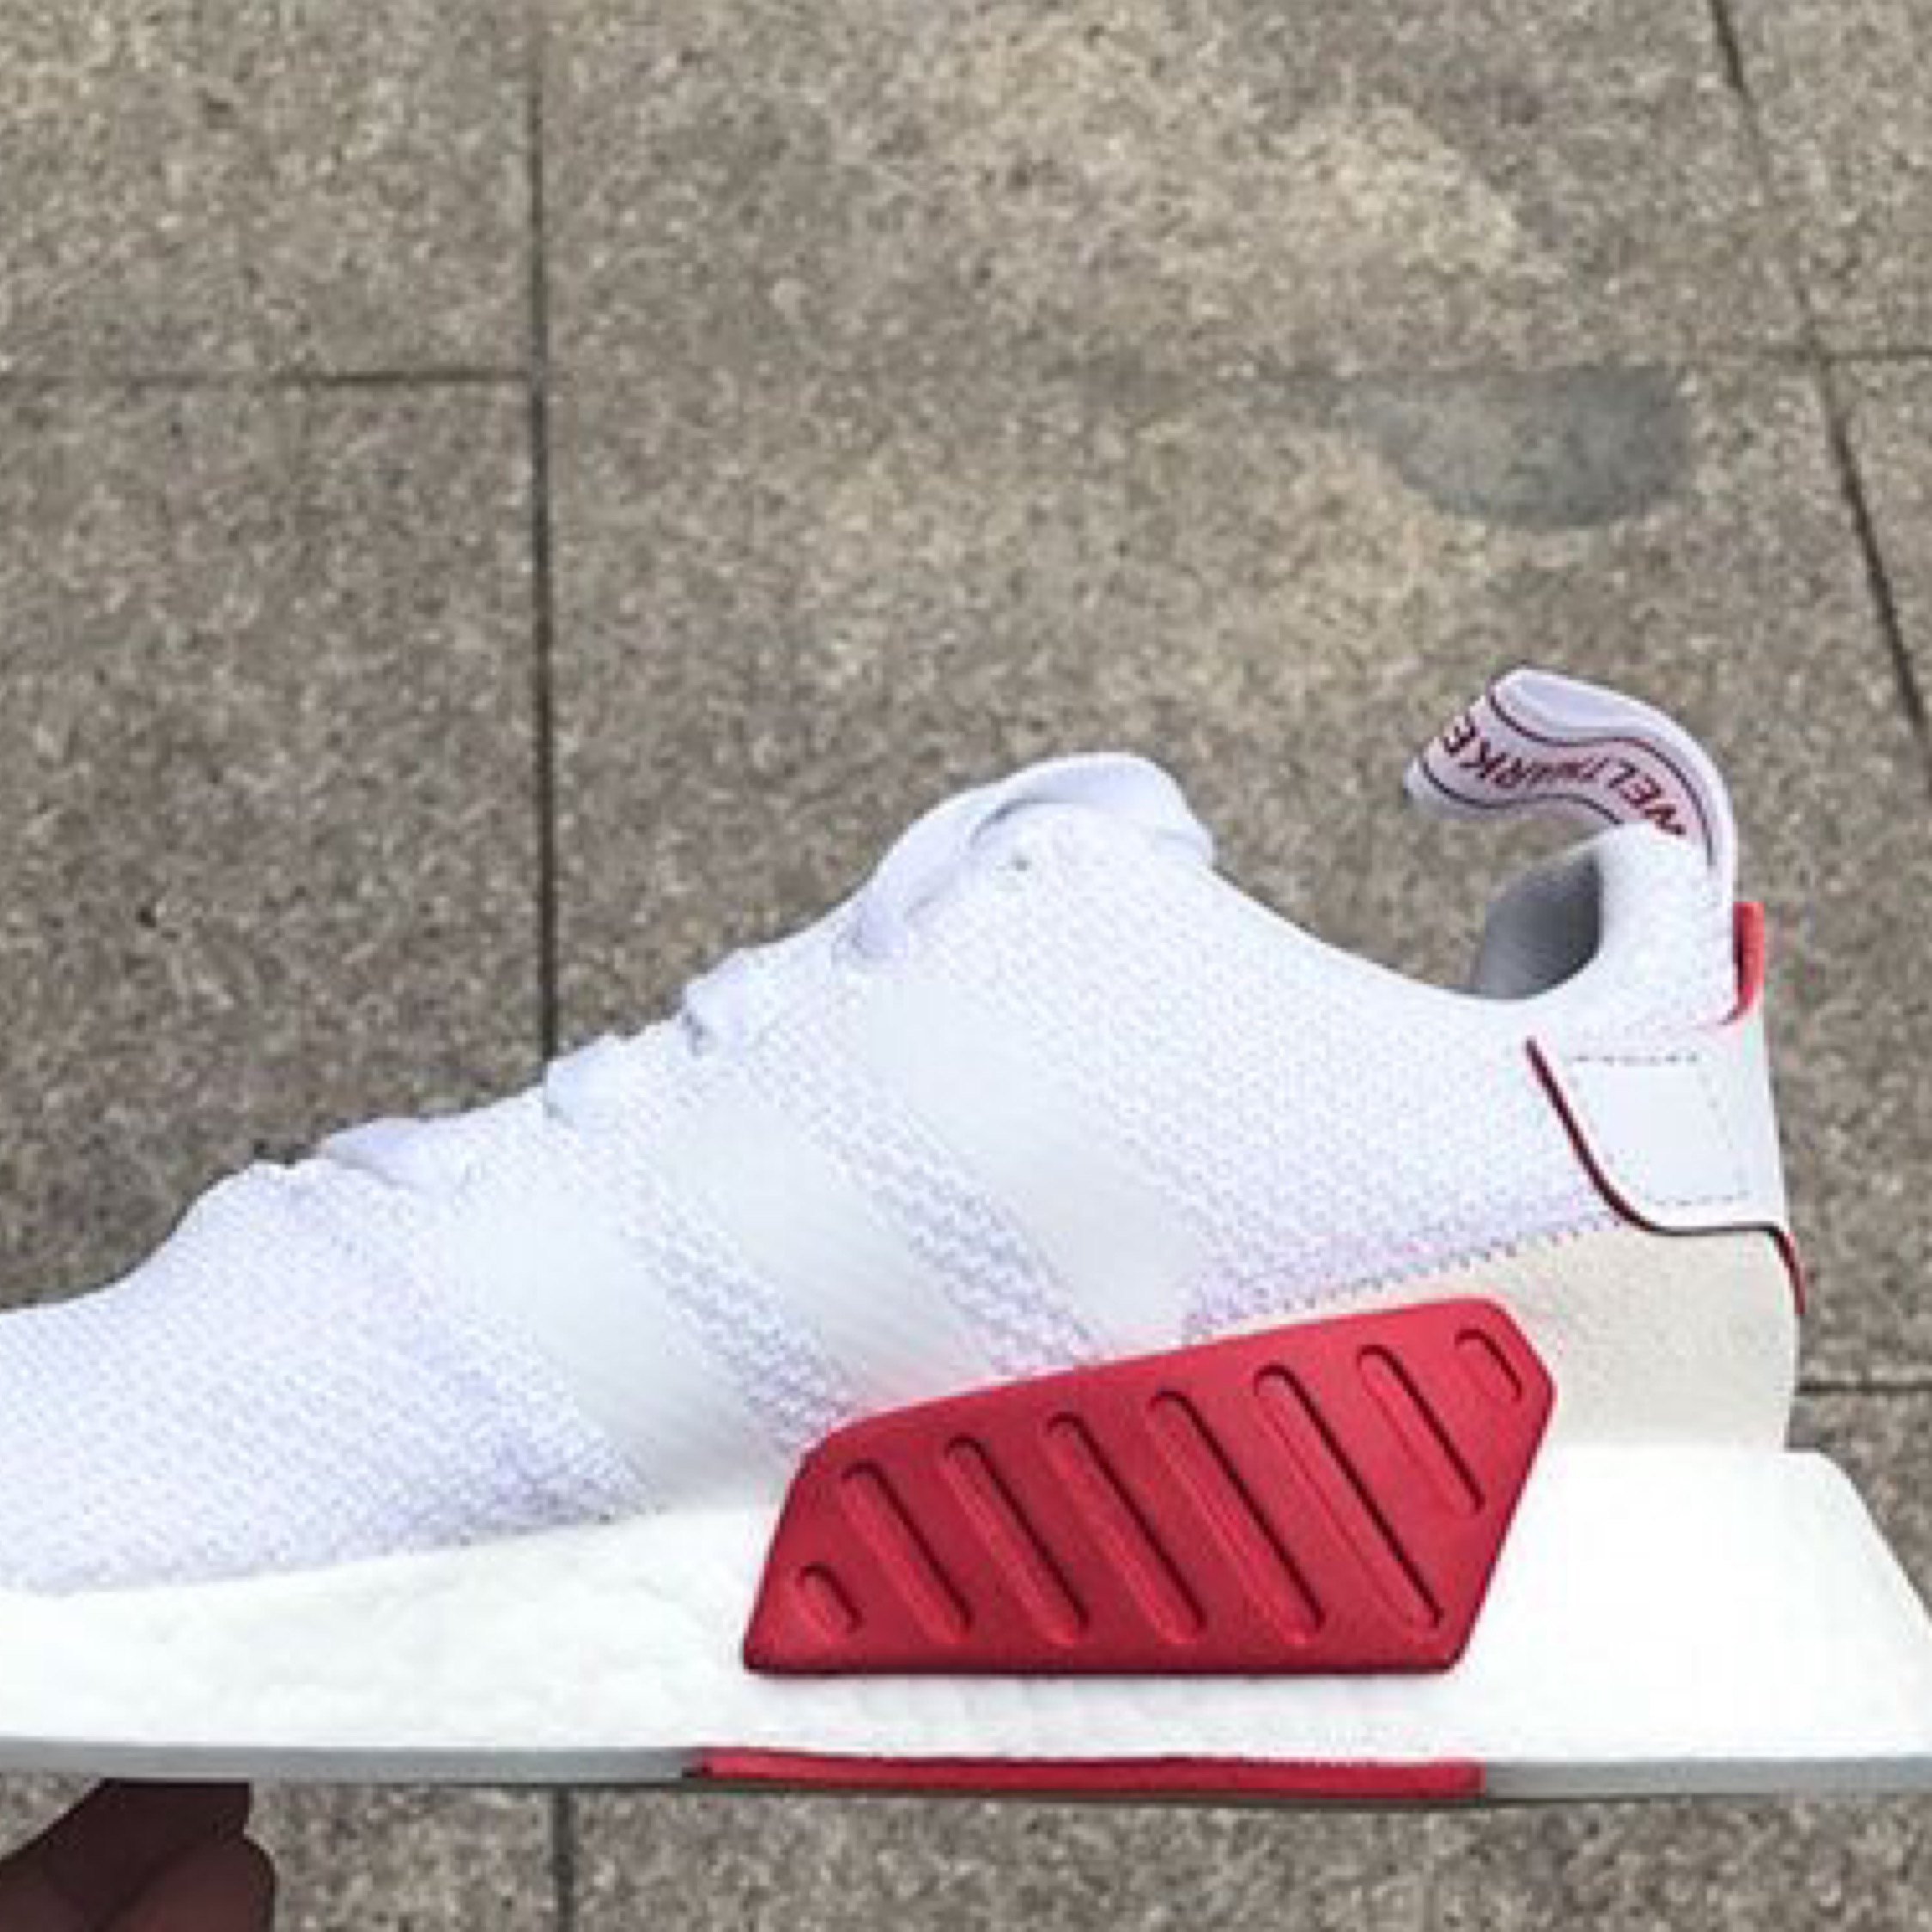 timeless design d162b bdffc Adidas Nmd R2 Chinese New Year (2018)